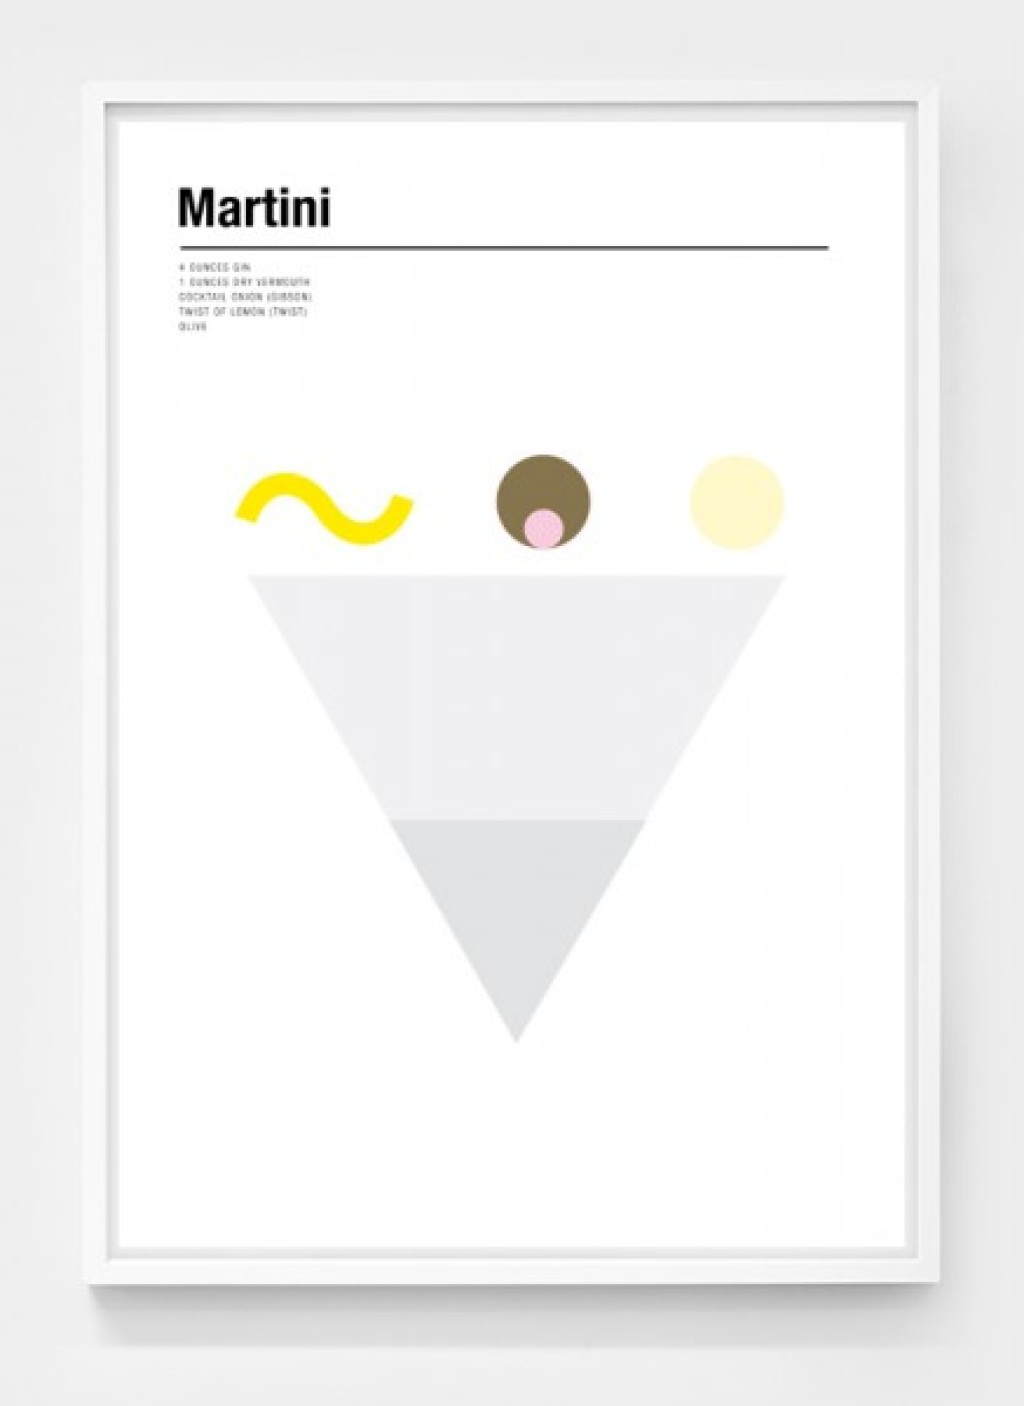 martini-cocktail-poster-by-nick-barclay-designs